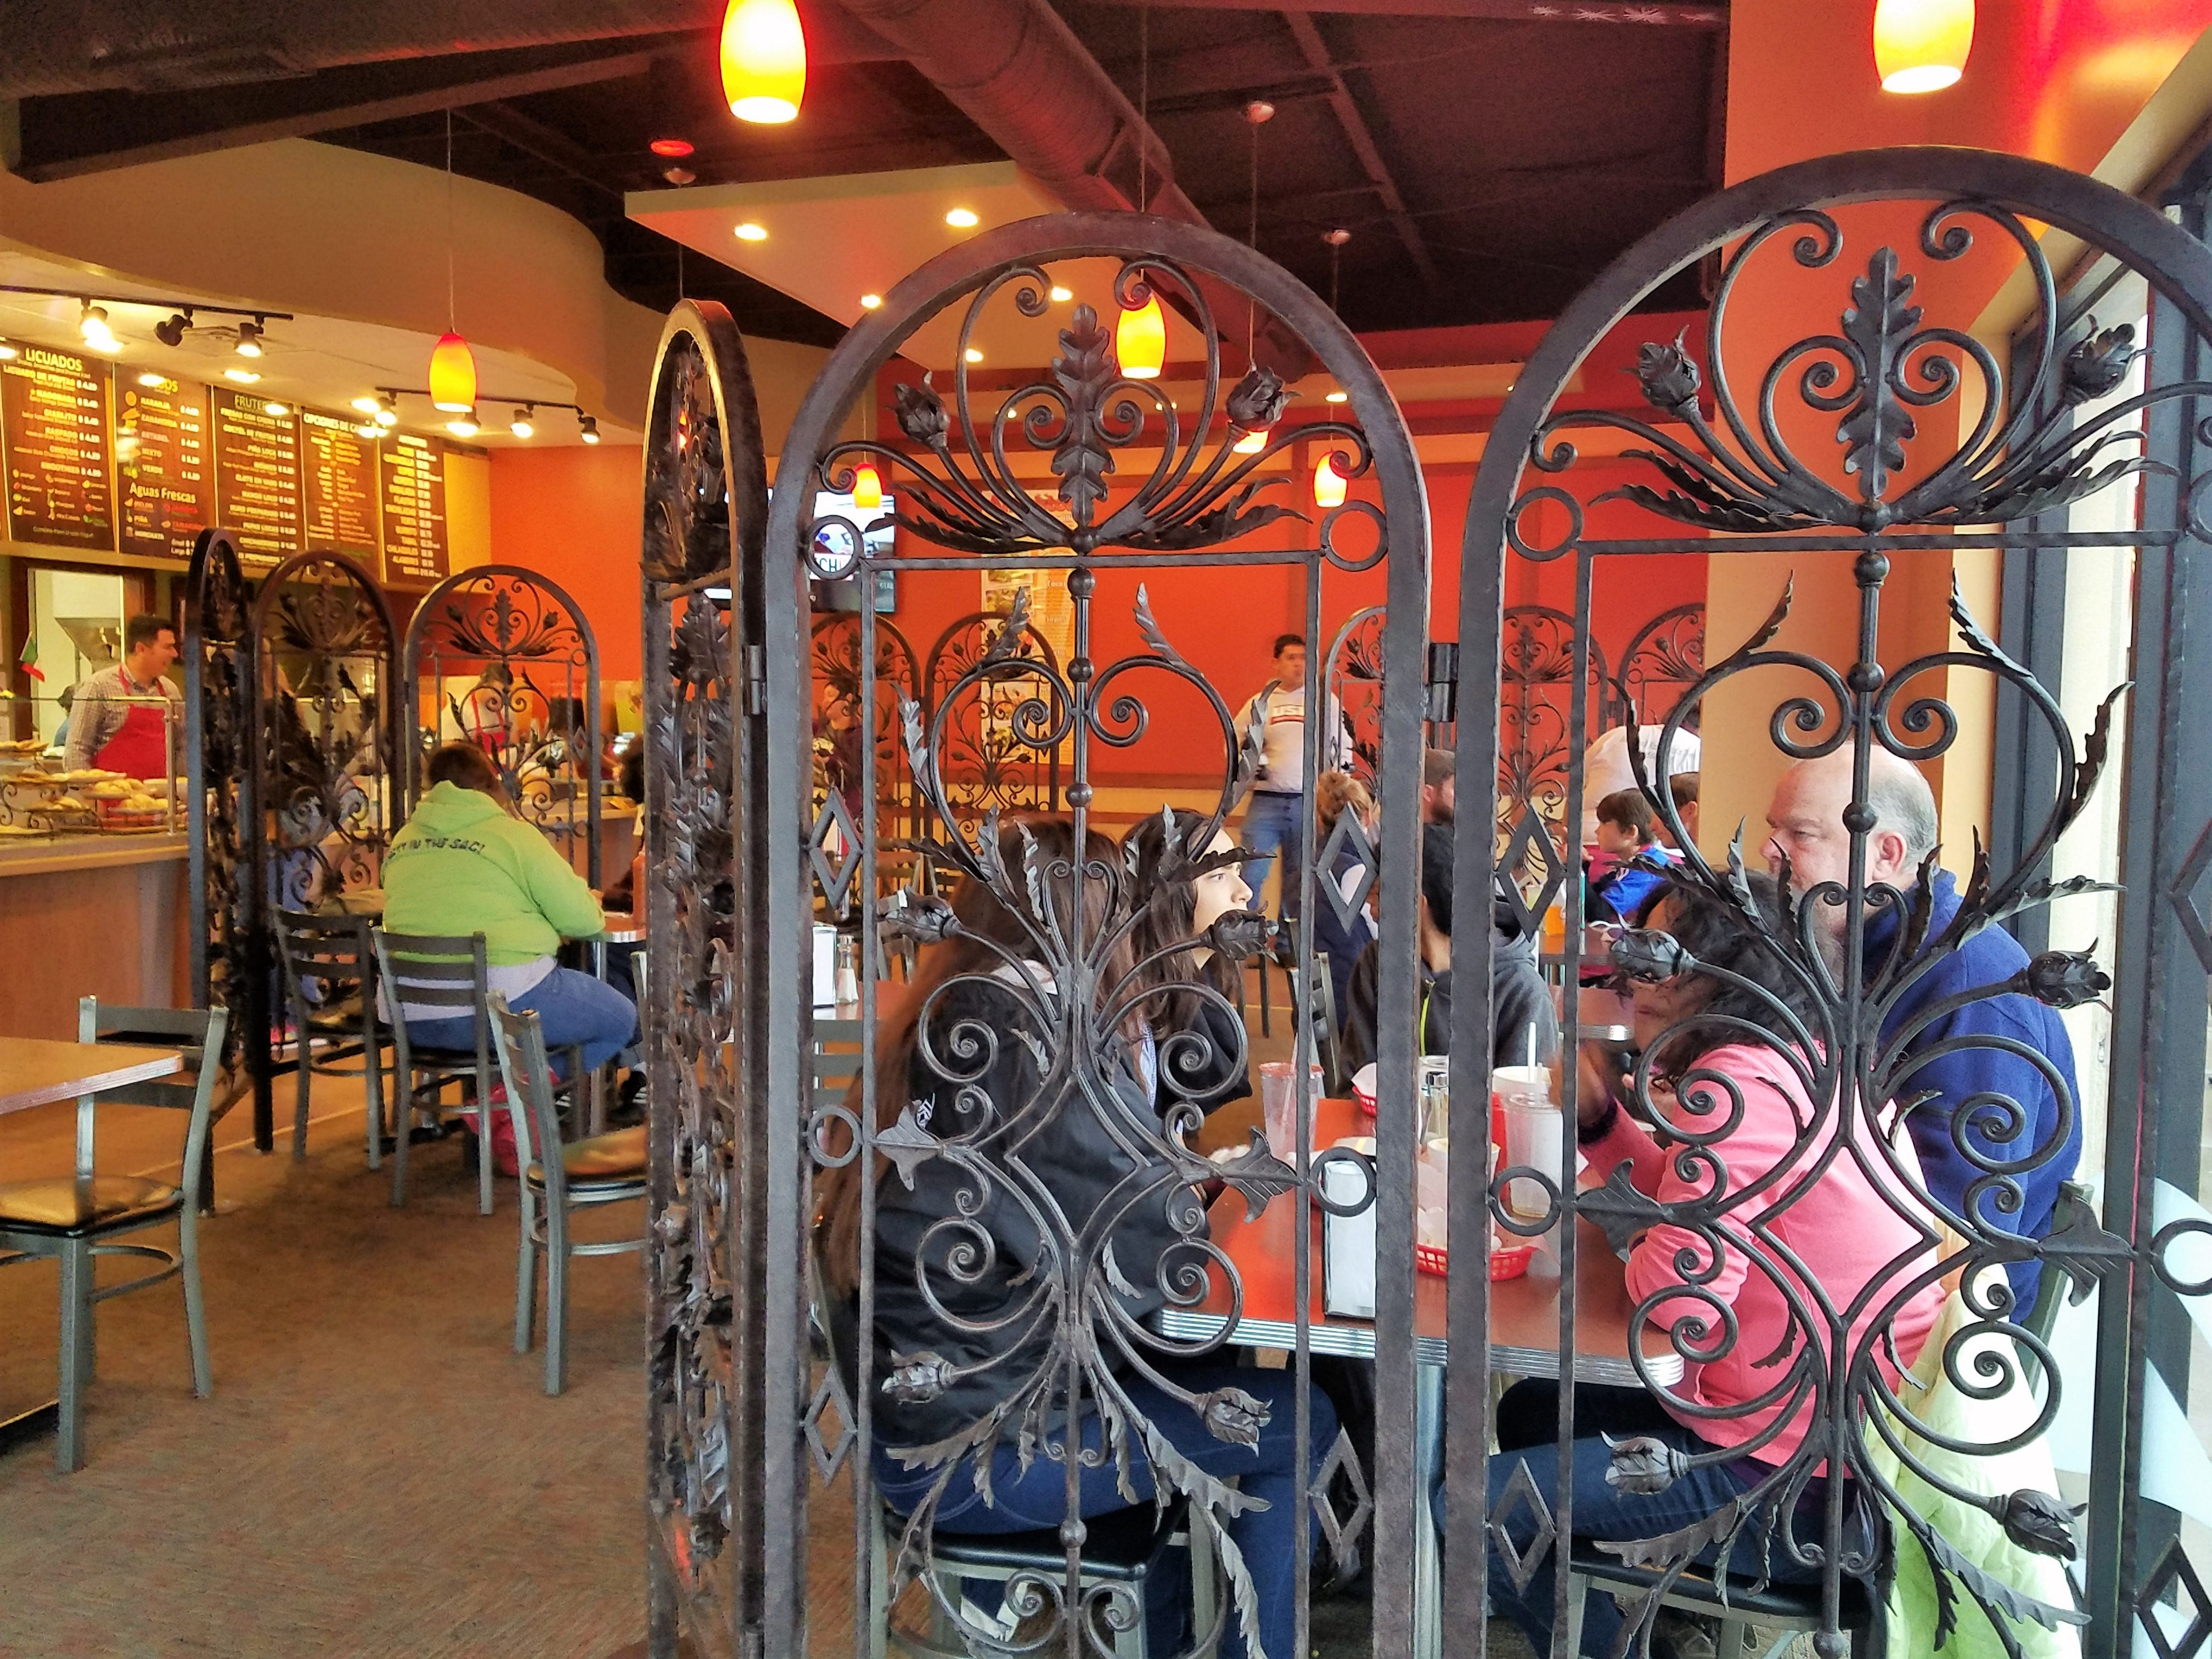 La Campirana is a hot spot in Evansville for authentic Mexican food, snacks and fresh fruit creations.